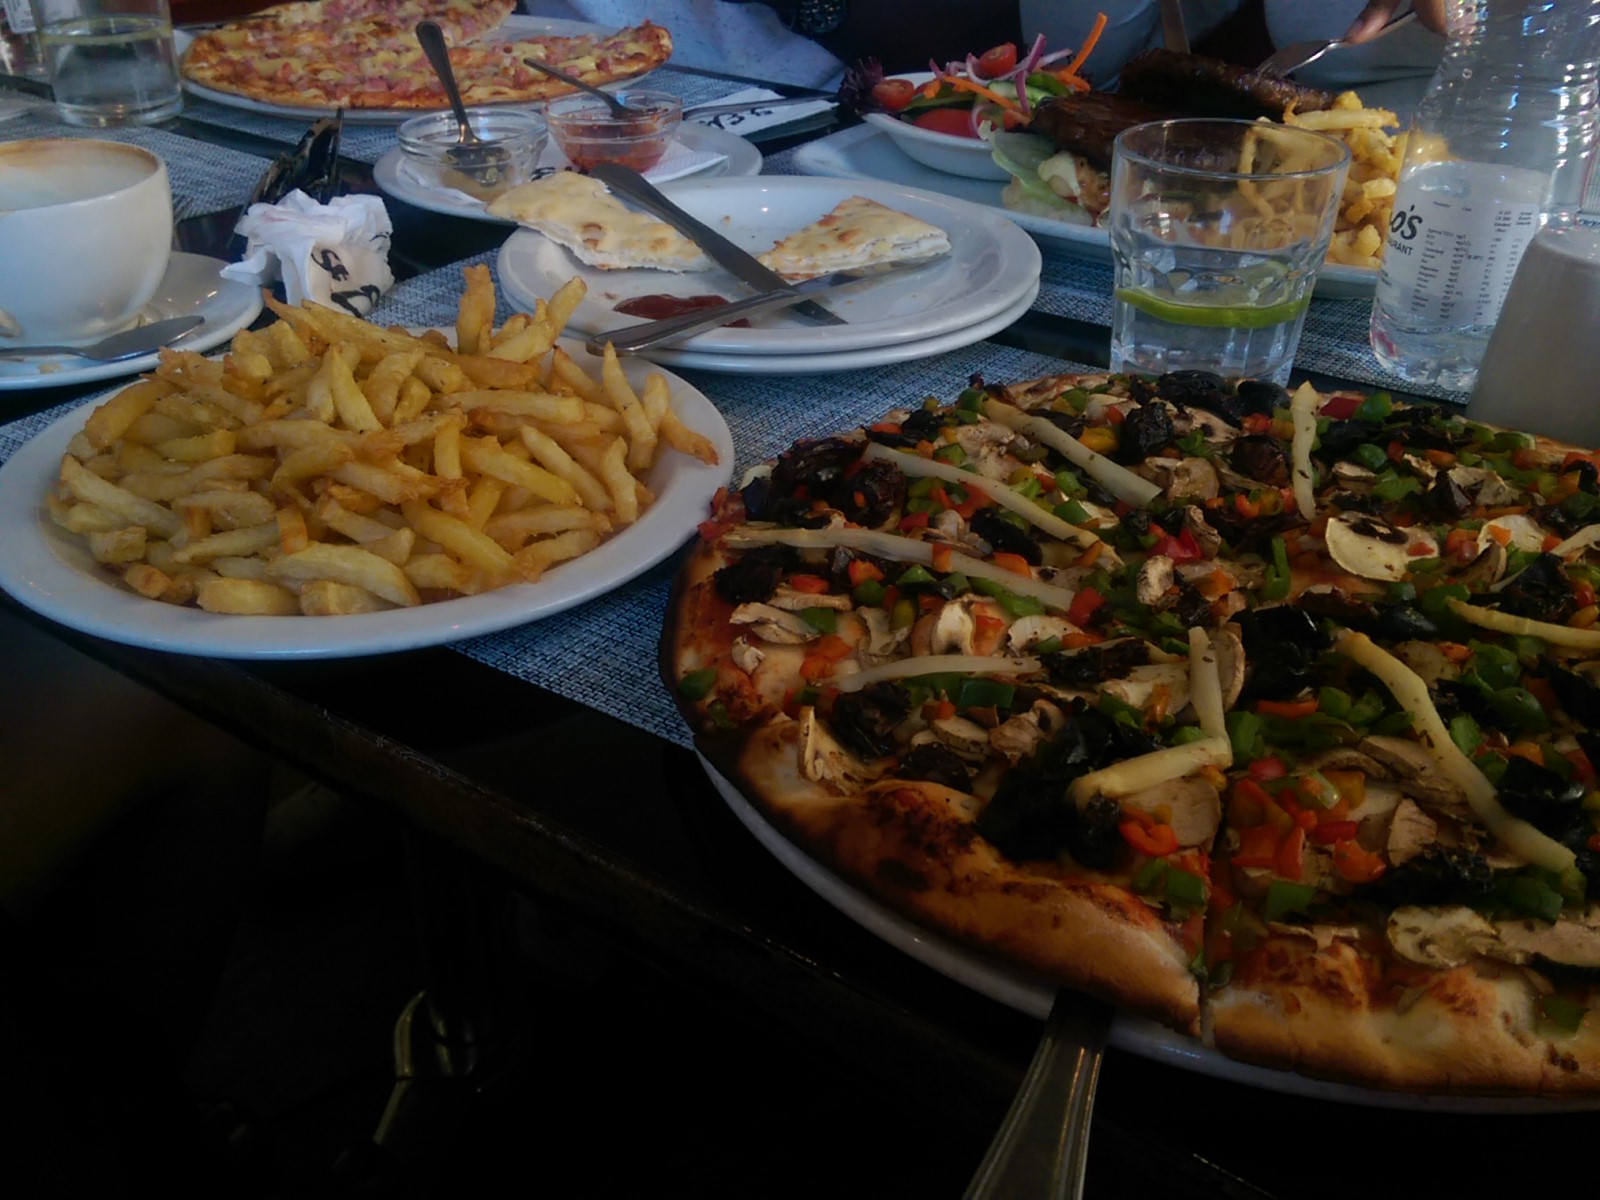 A table full of food, closest a pizza with vegetables beside a large plate of fries